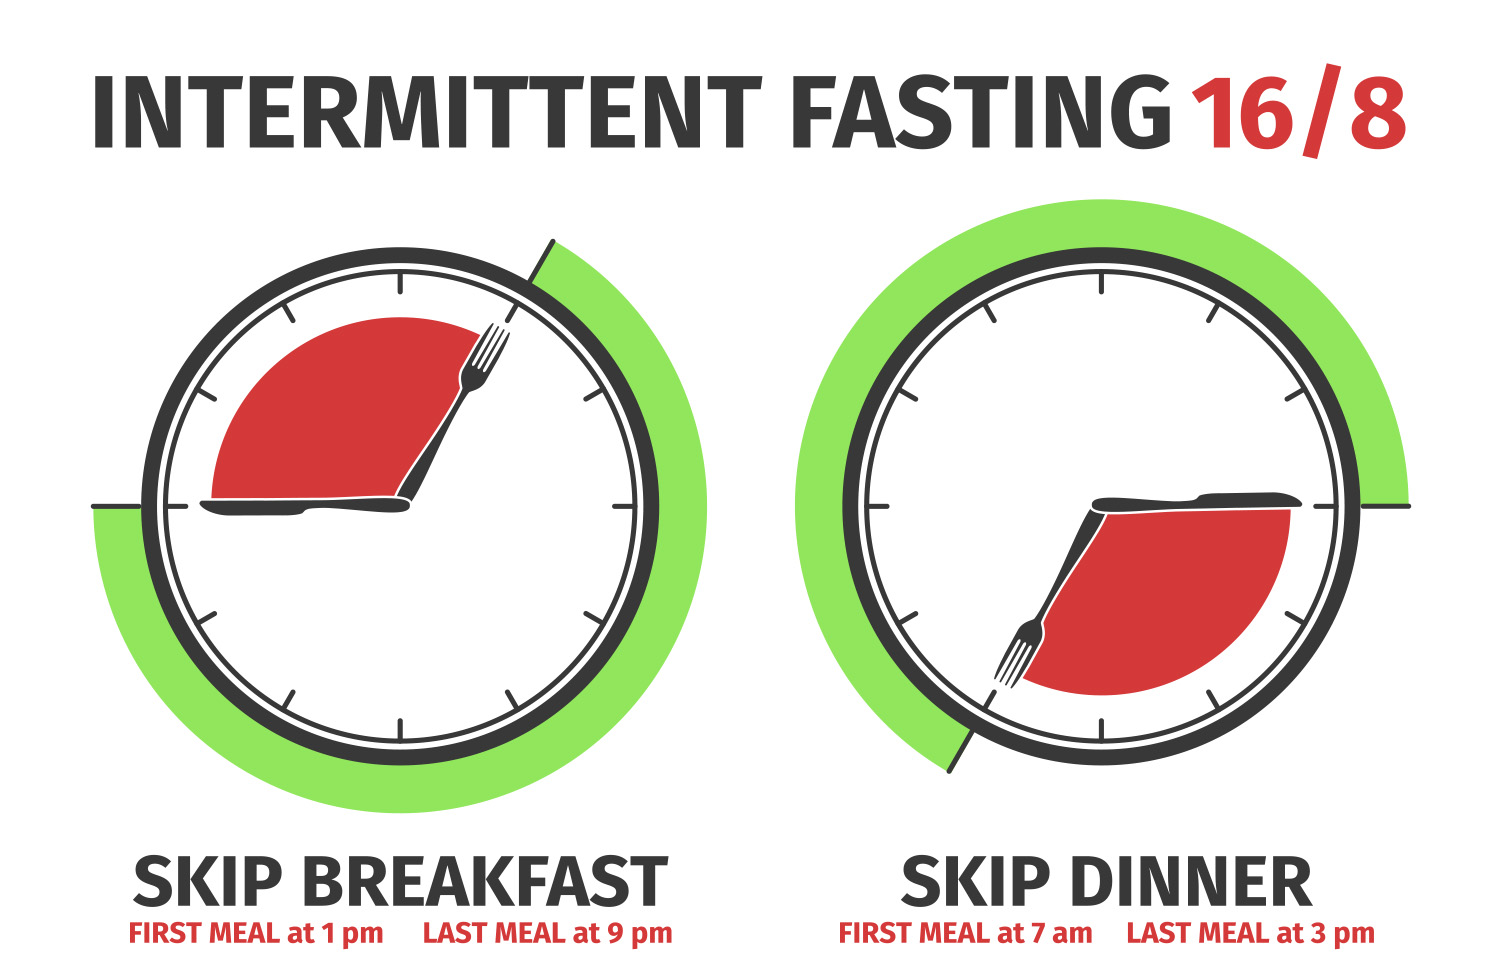 intermittent fasting 16/8 skip breakfast eat the first meal at 1 pm last meal 9 pm skip dinner first meal 7 am the last 3 pm